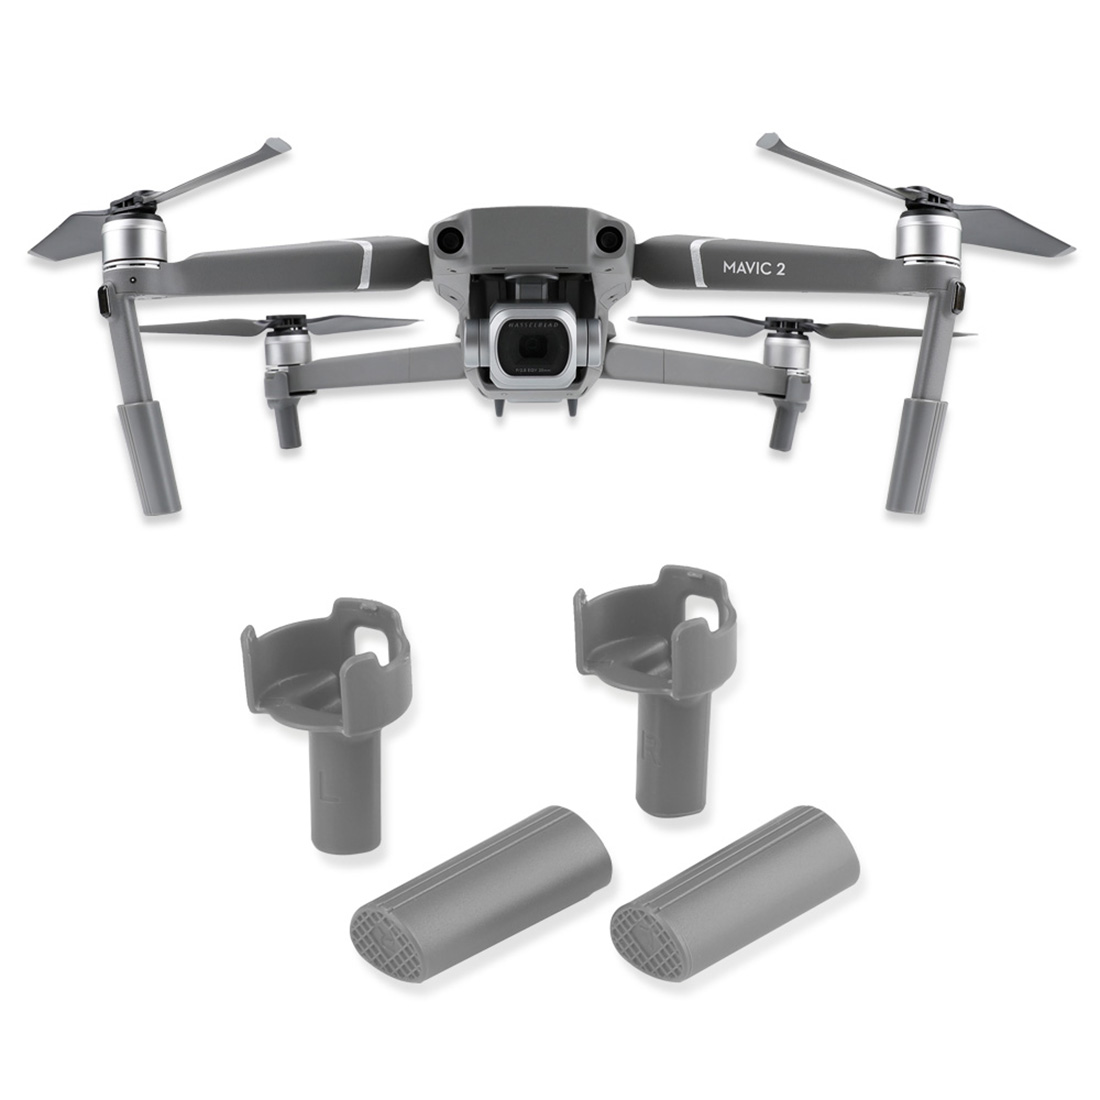 Universal Increased Landing Gear for DJI MAVIC 2 PRO/MAVIC 2 ZOOM pgytech dji mavic 2 landing gear riser extended landing gear leg for dji mavic 2 pro zoom fly more combo drone accessories parts